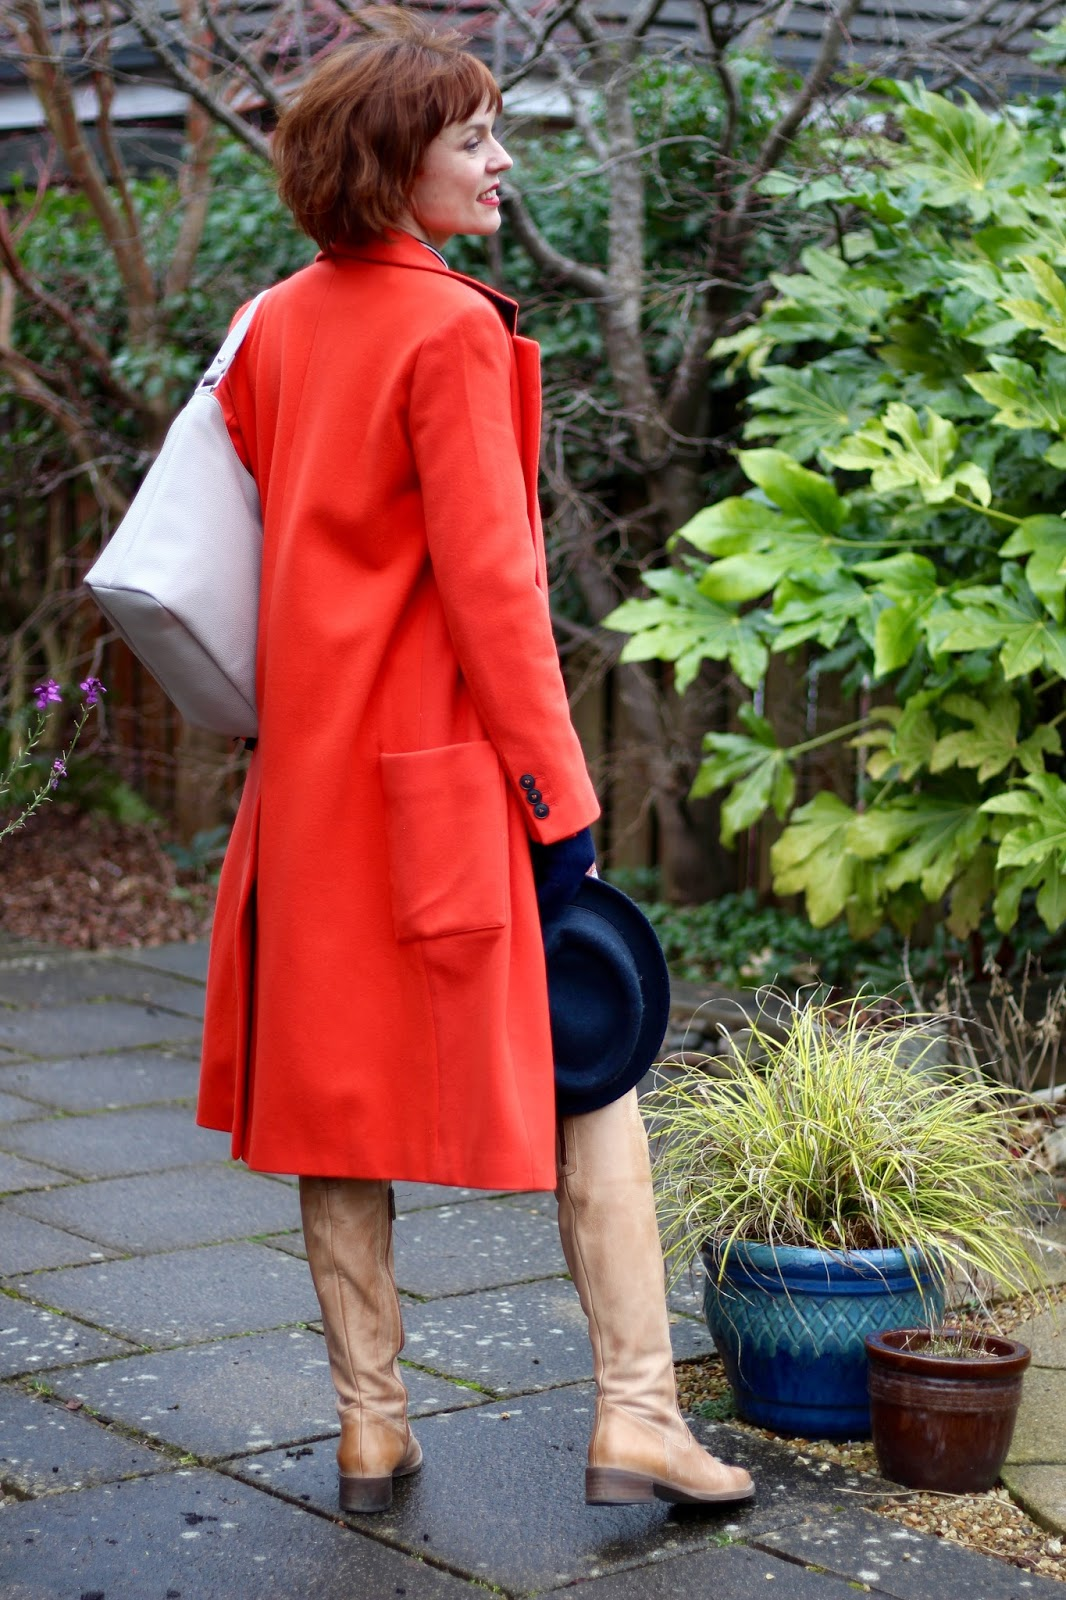 Is orange an Unprofessional Colour? Orange Coat, Navy, Grey and Tan, over 40.